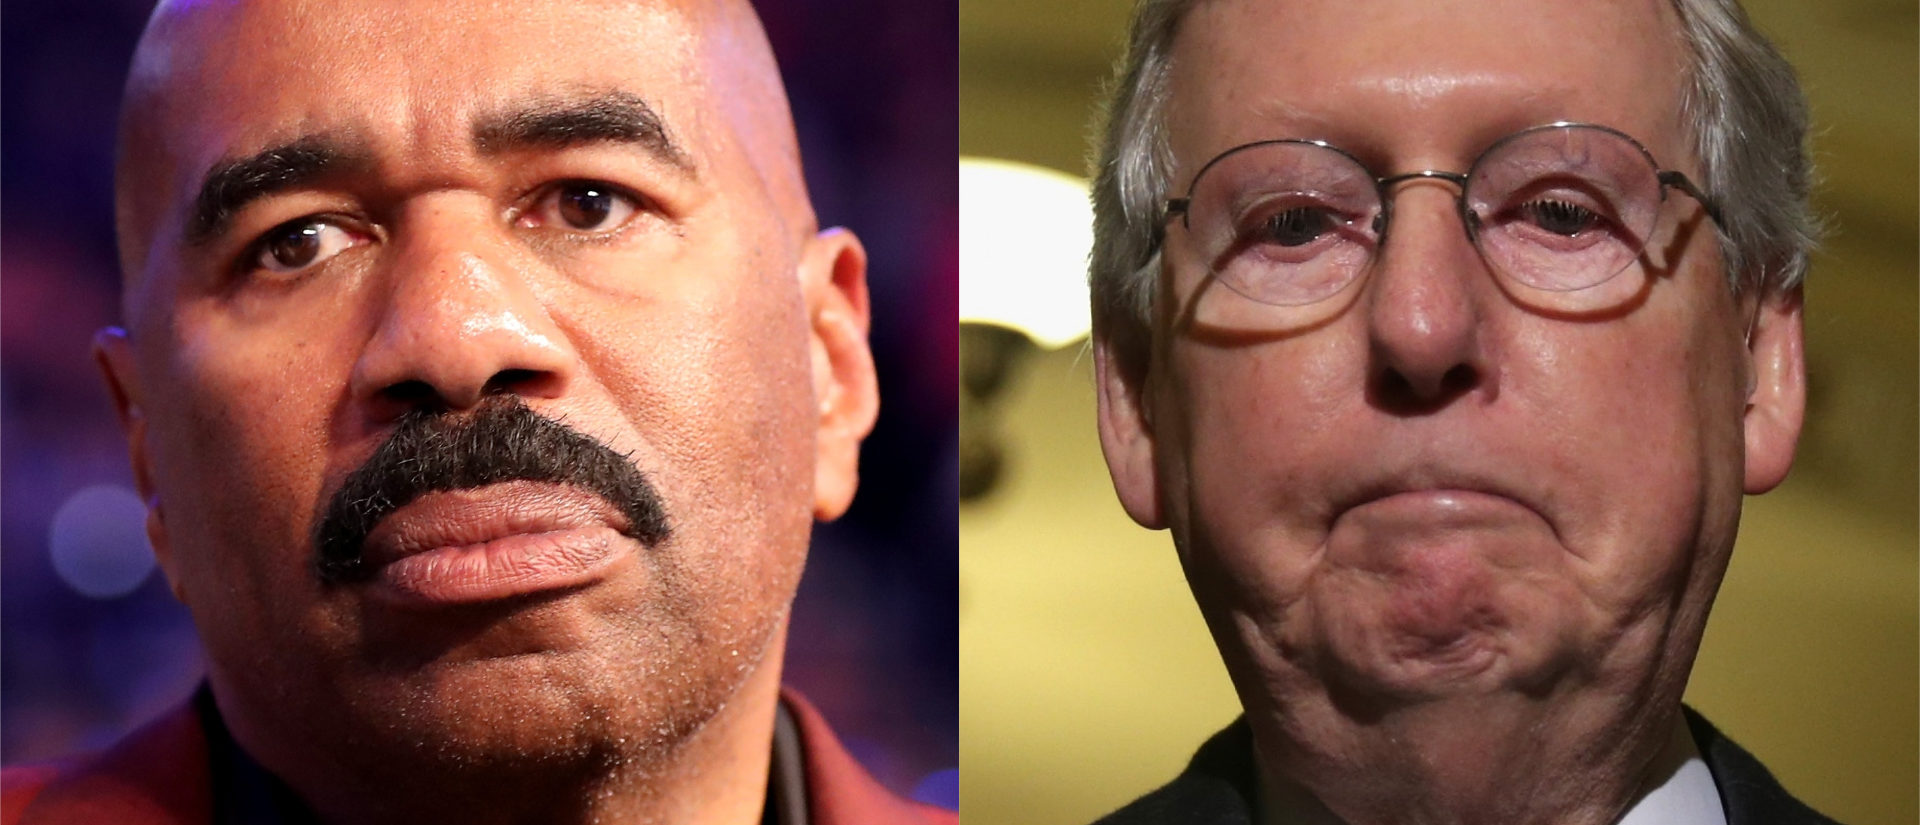 Steve Harvey Calls Mitch McConnell A 'Hillbilly' Over Reparations Comments